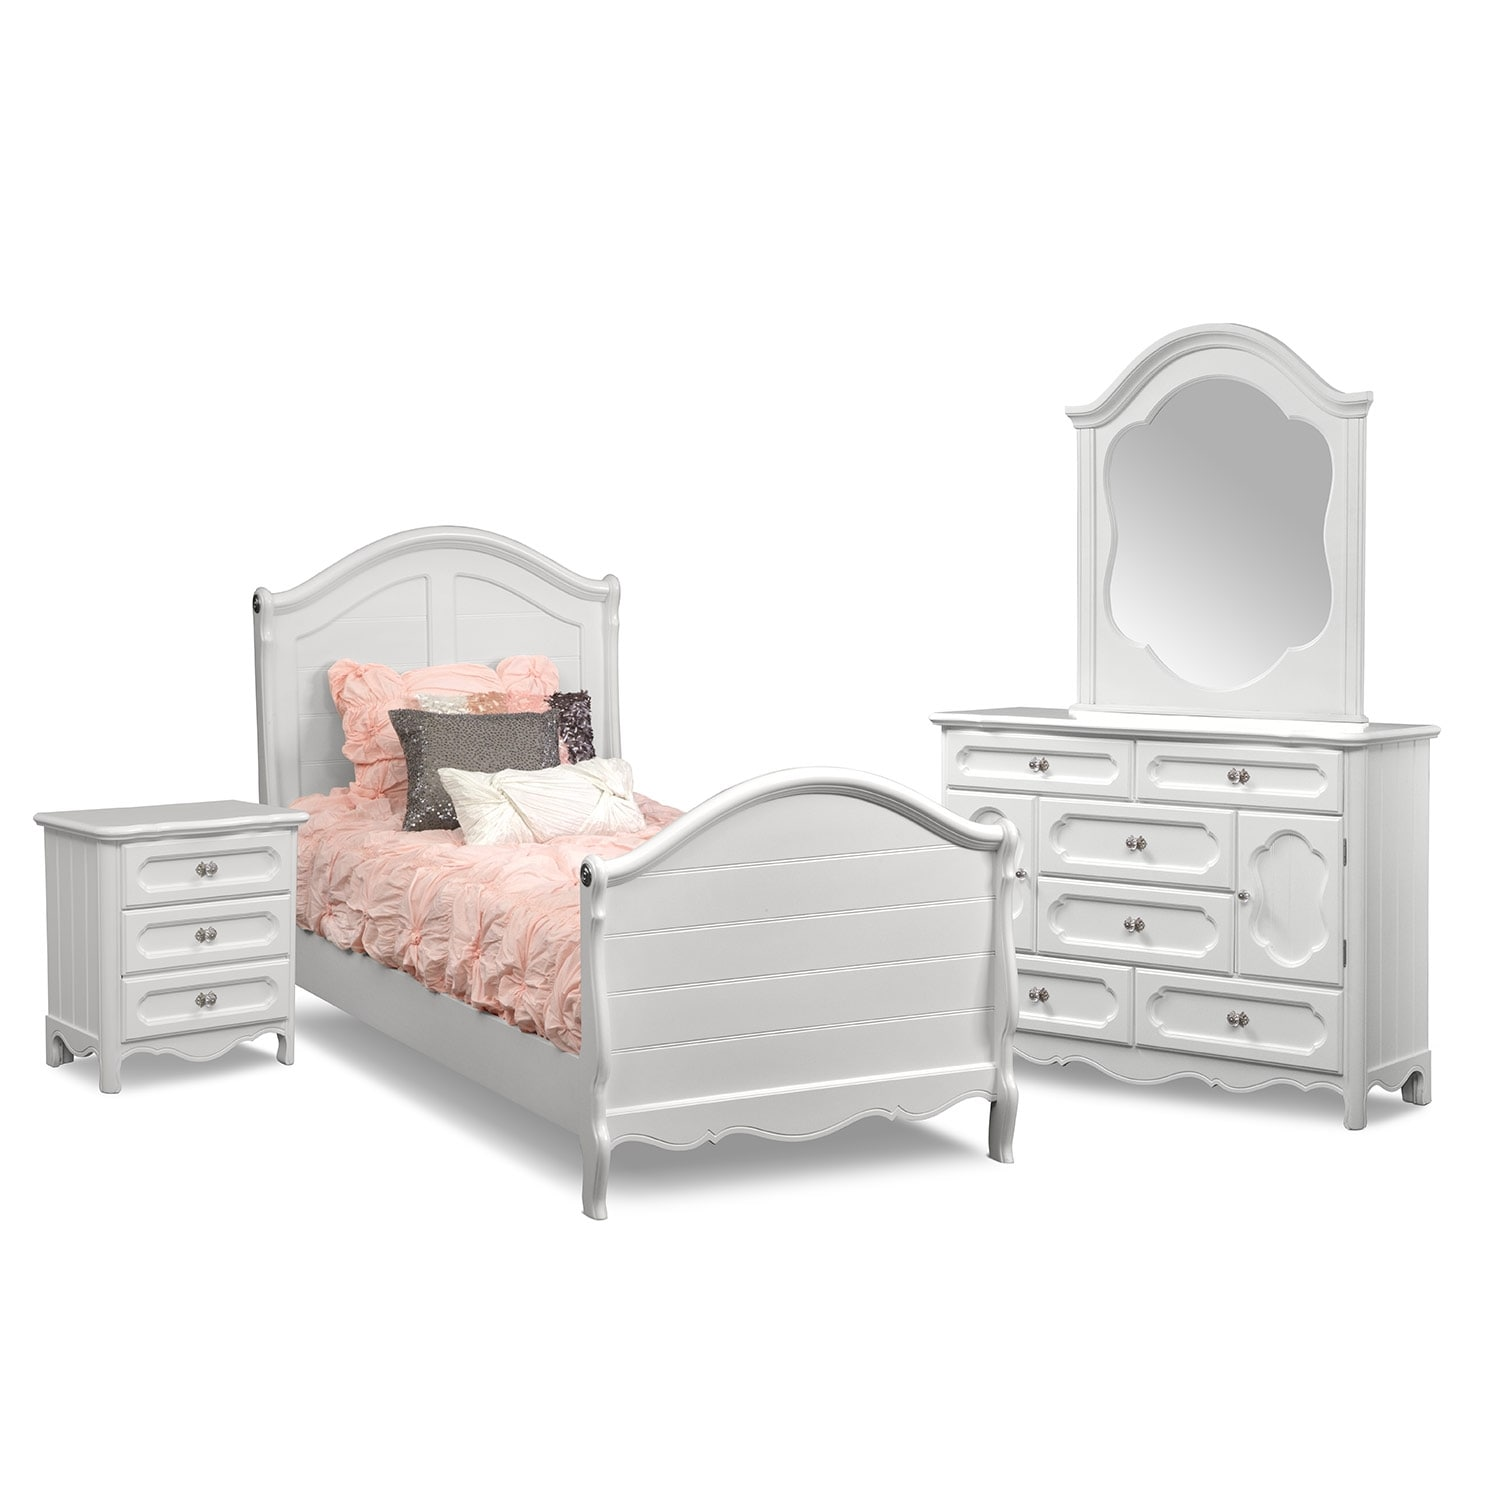 Futuristic White Twin Bedroom Set Painting